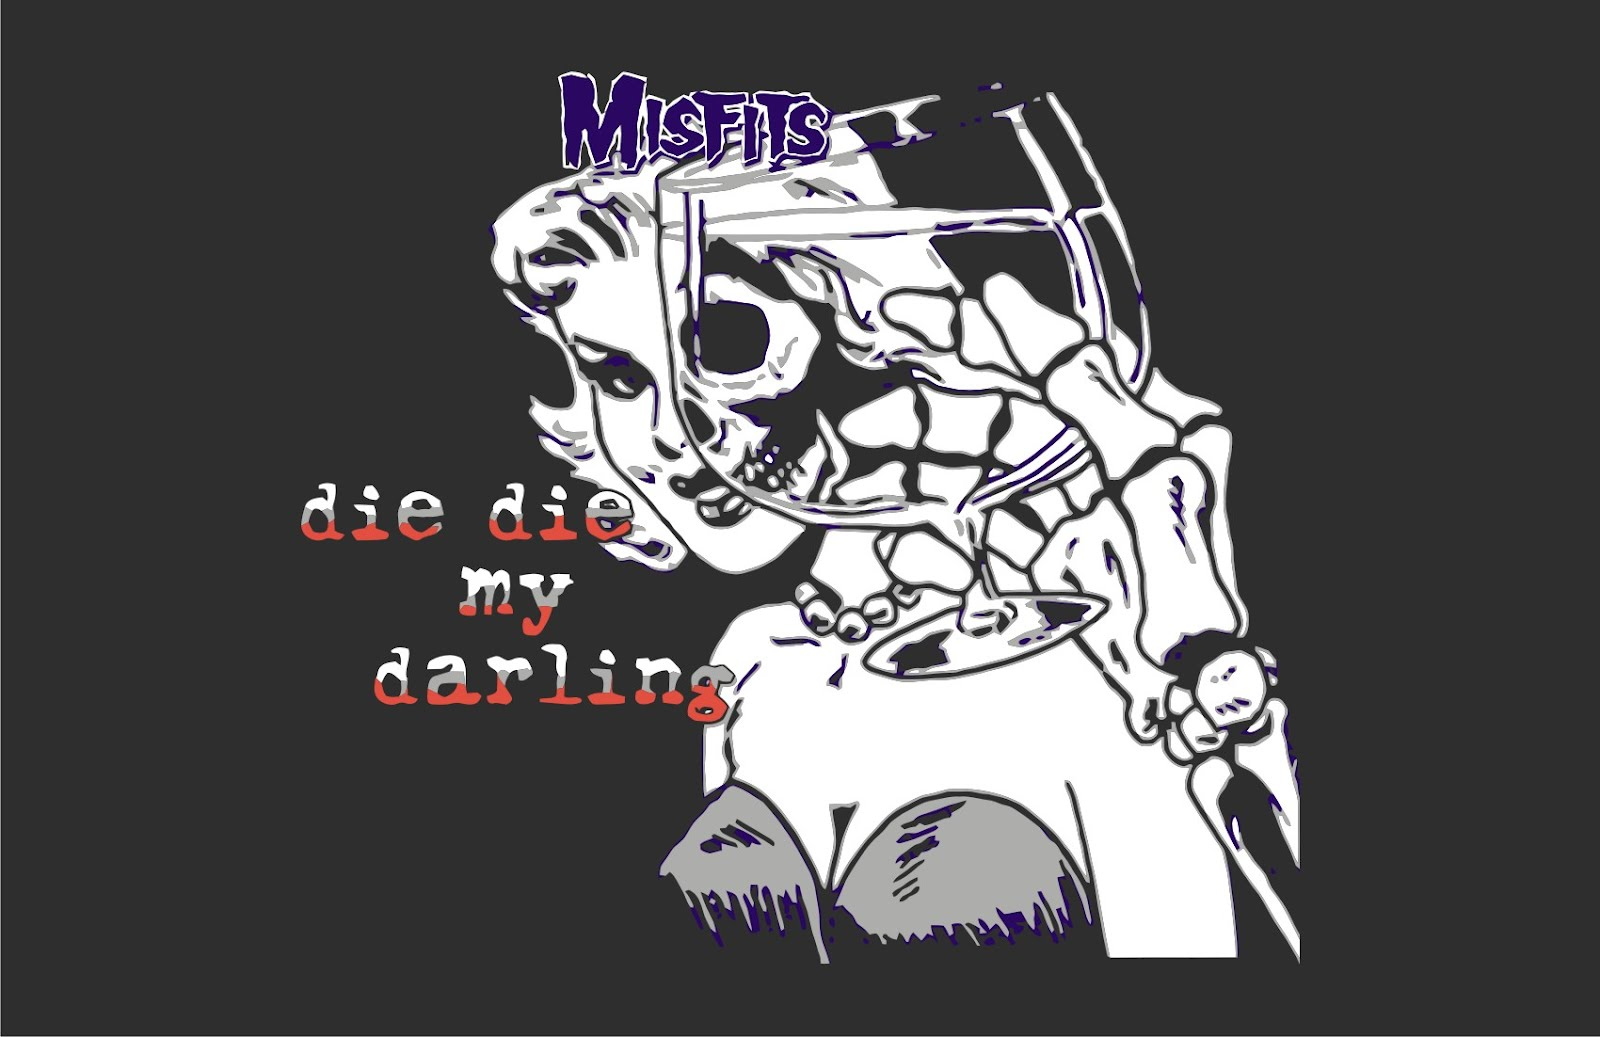 the_misfits-die_die_my_darling_cover_front_vector